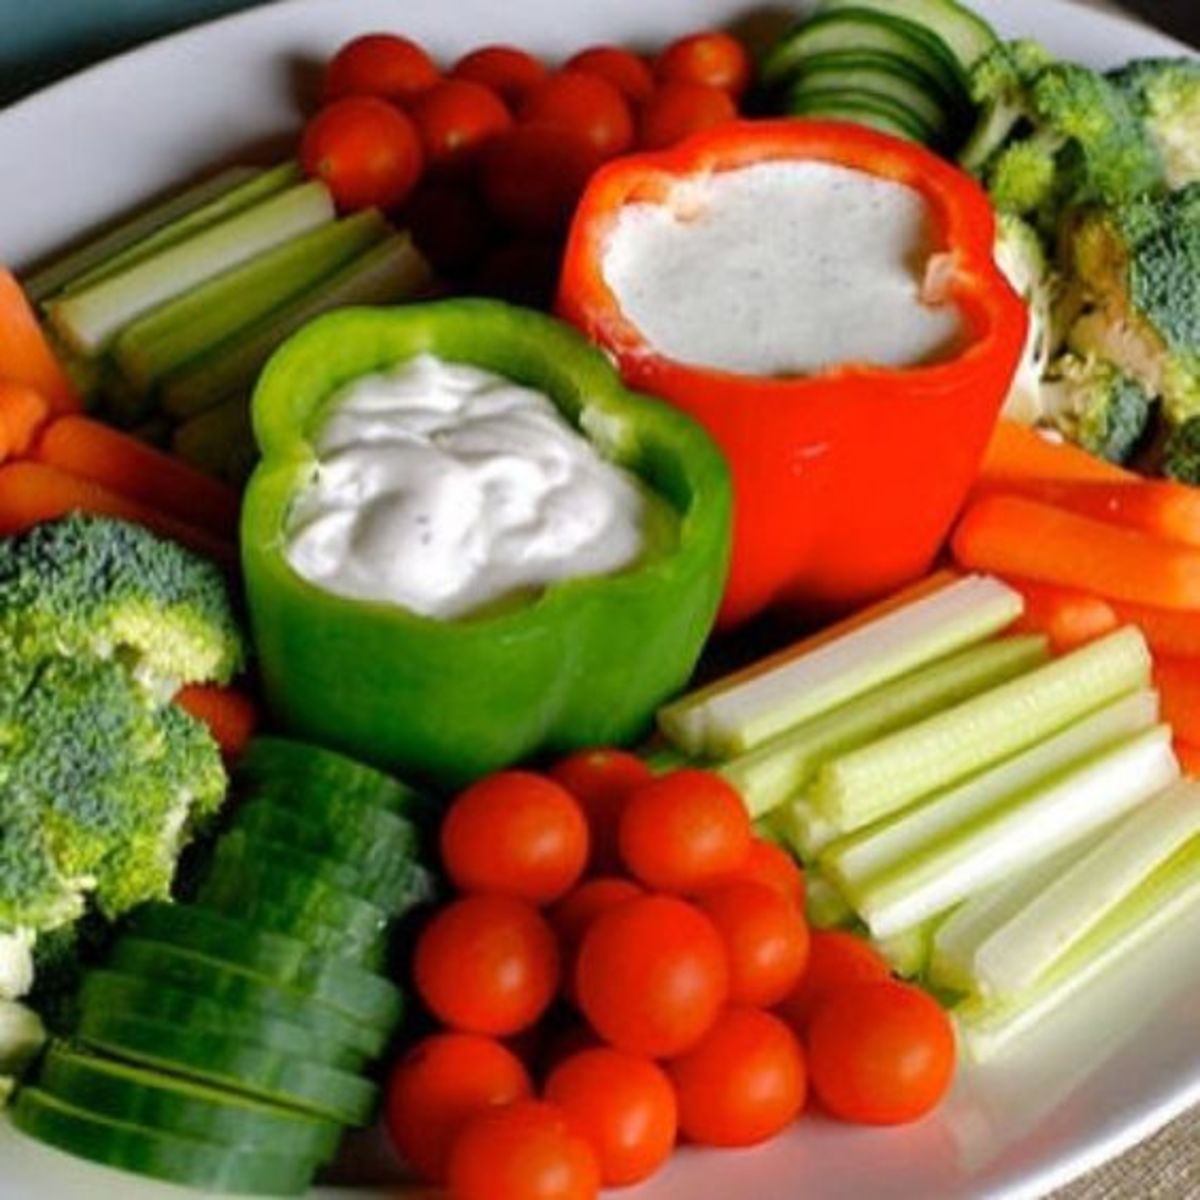 Offering healthy snacks is a great idea and is simple preparation too